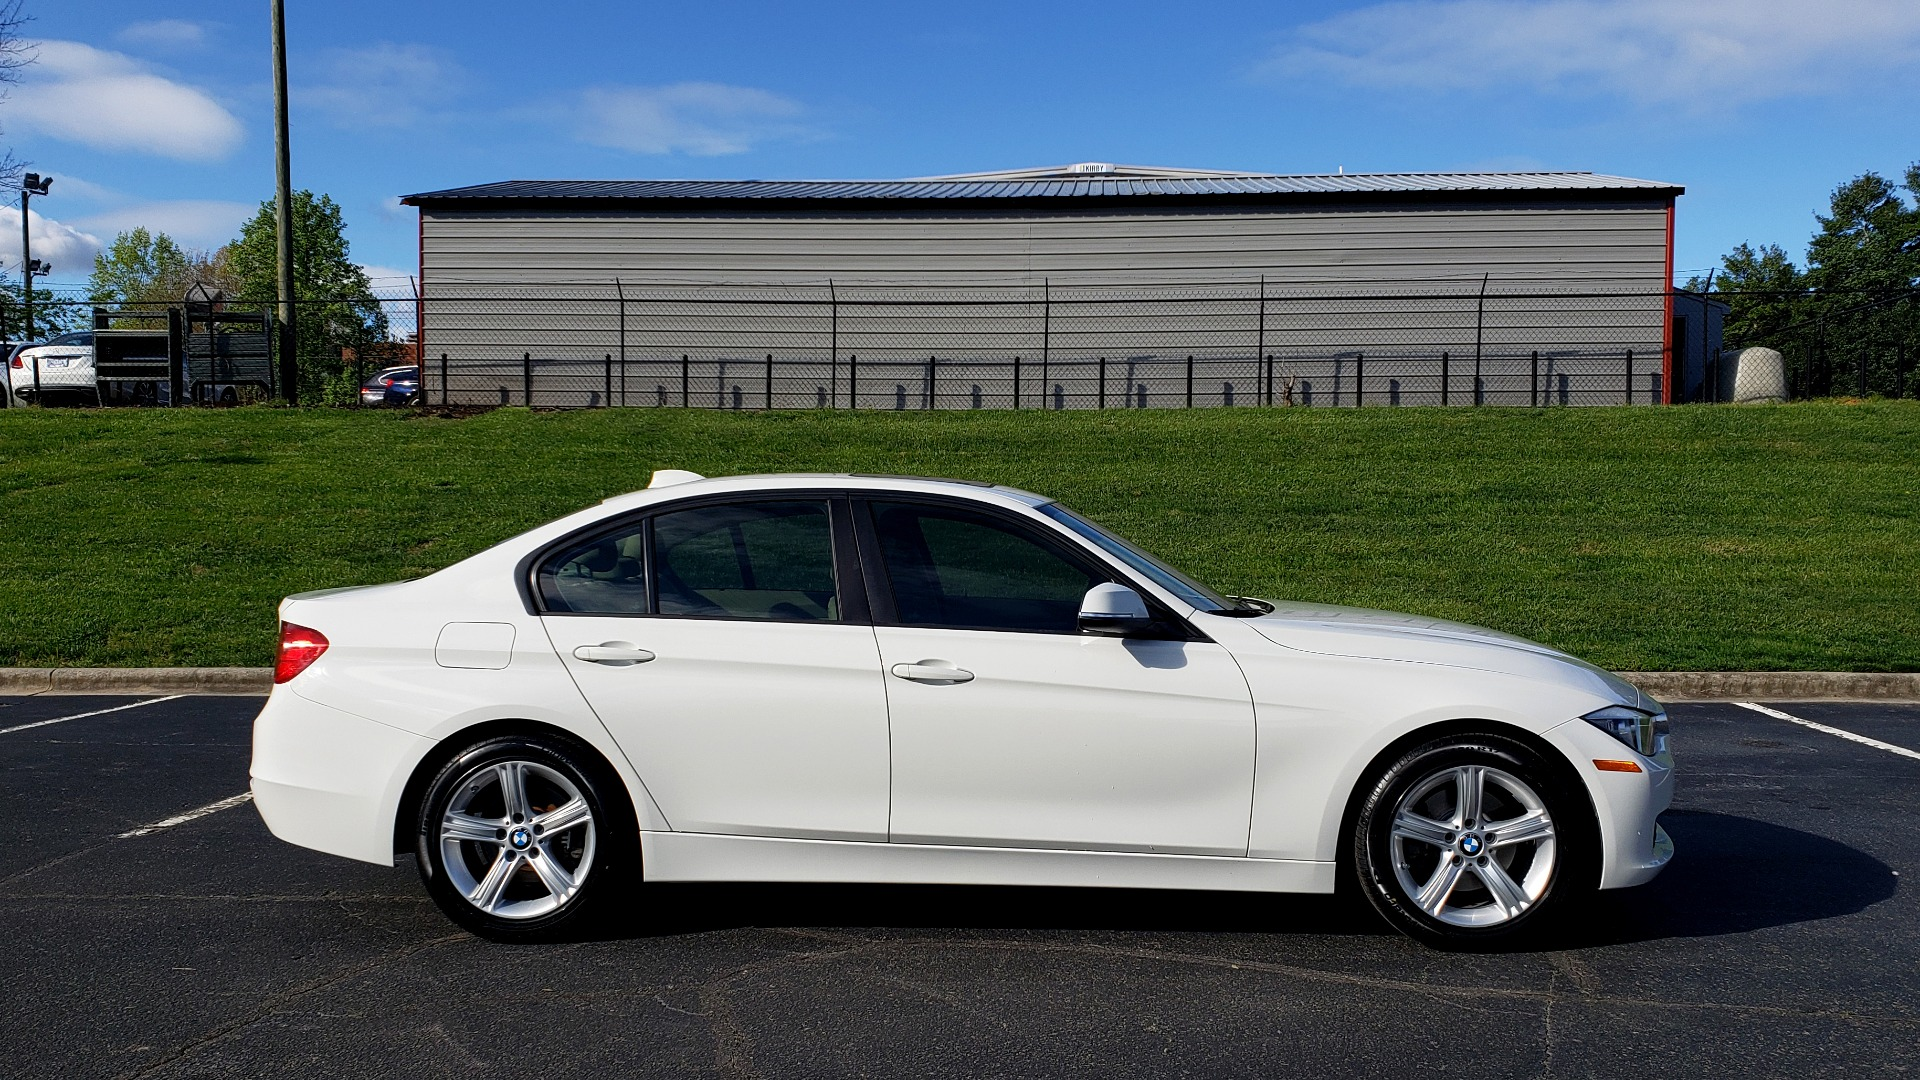 Used 2013 BMW 3 SERIES 328I PREMIUM / SUNROOF / COMFORT ACCESS KEY / SAT RADIO for sale Sold at Formula Imports in Charlotte NC 28227 5